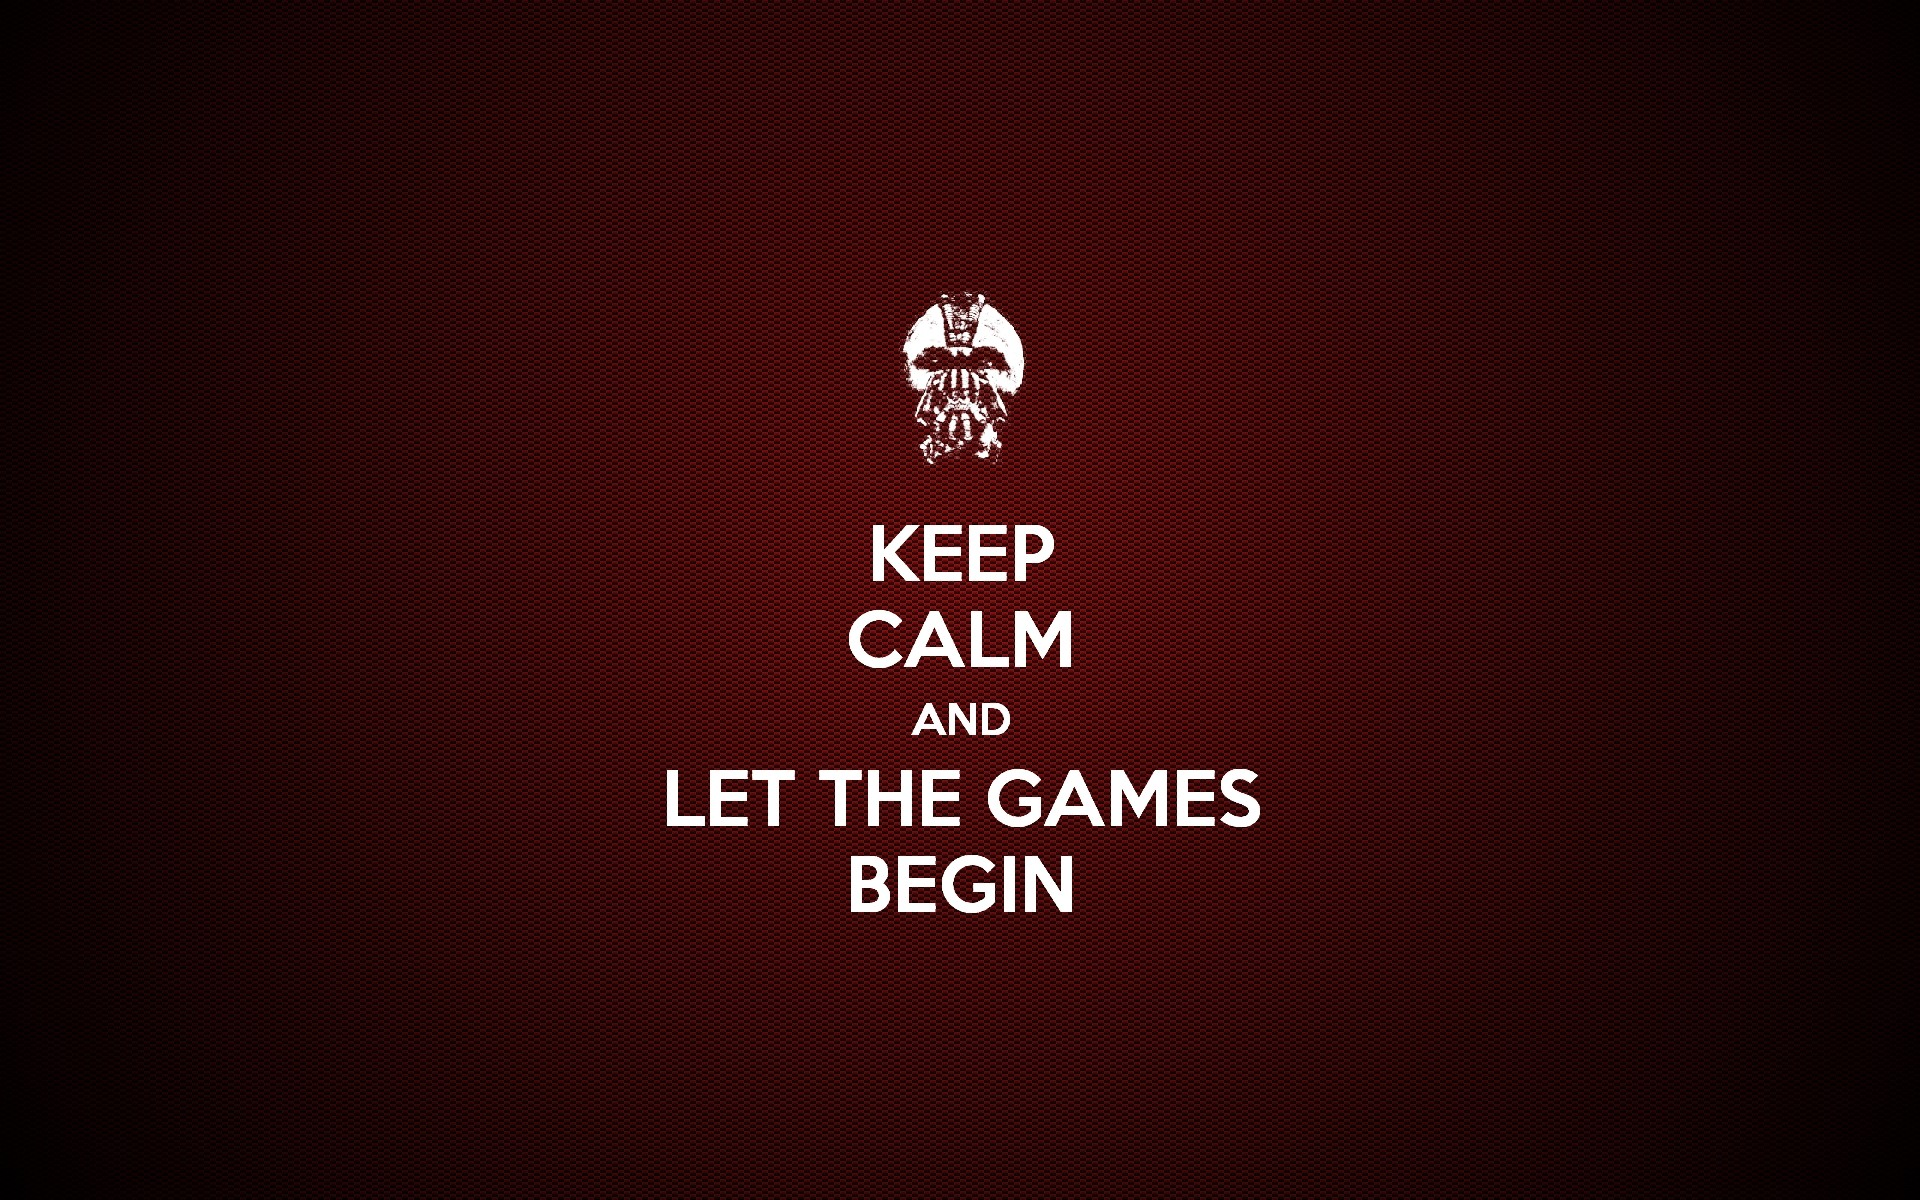 Wallpapers Keep Calm Let Games Begin HD Wallpapers Keep Calm 1920x1200